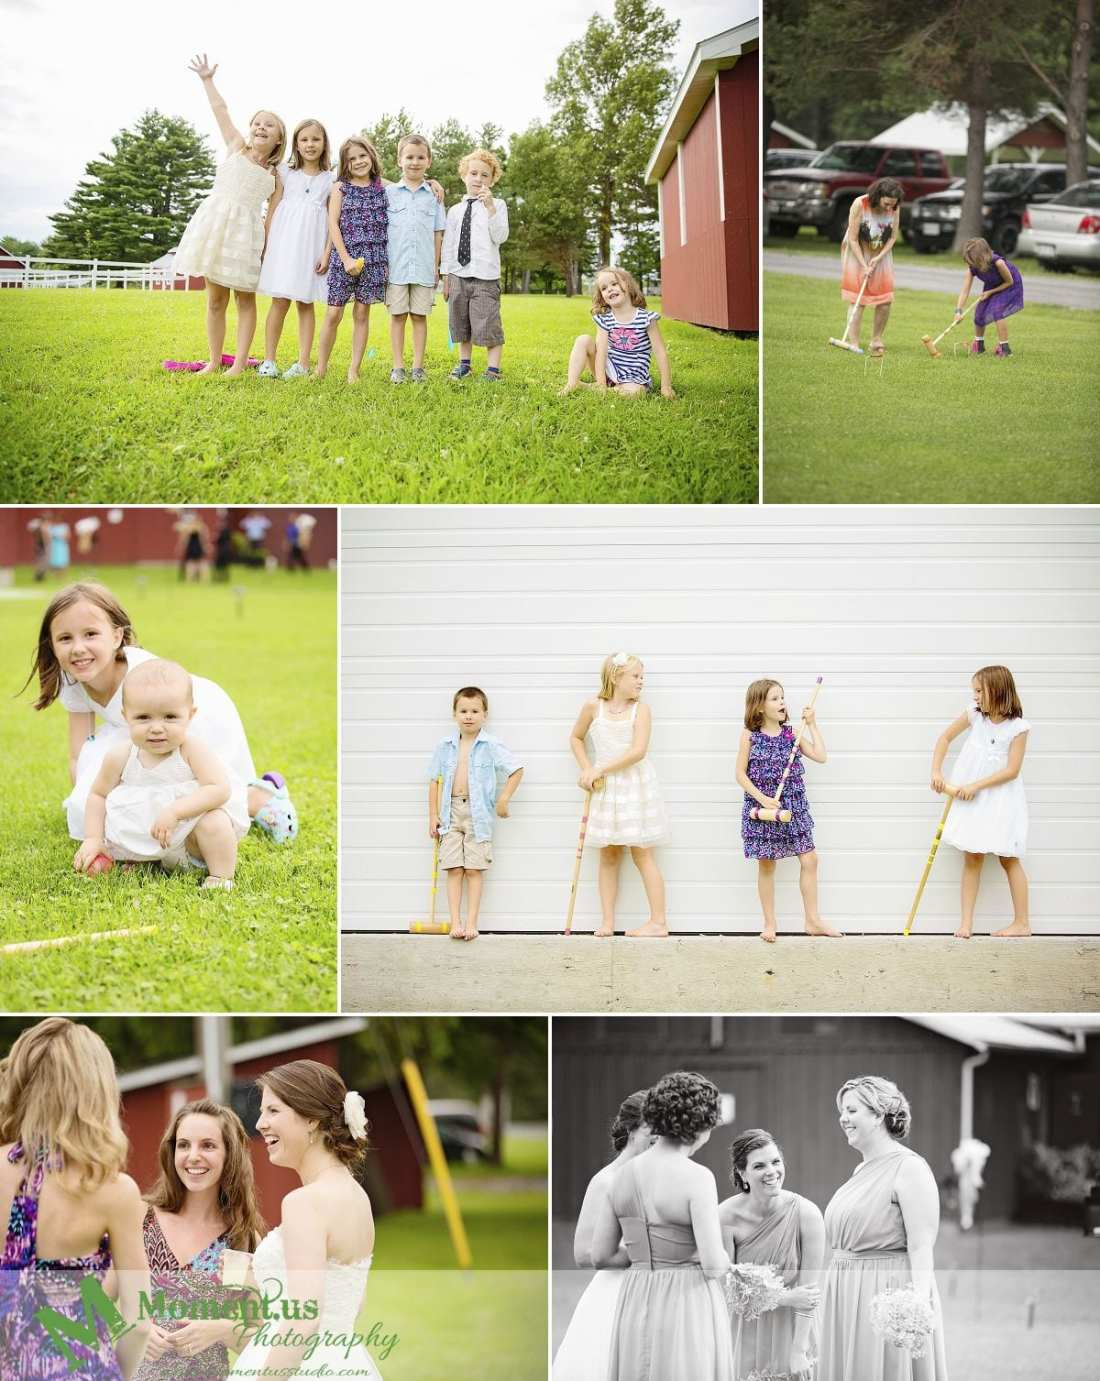 Williamstown Country Wedding - kids with croquet mallets